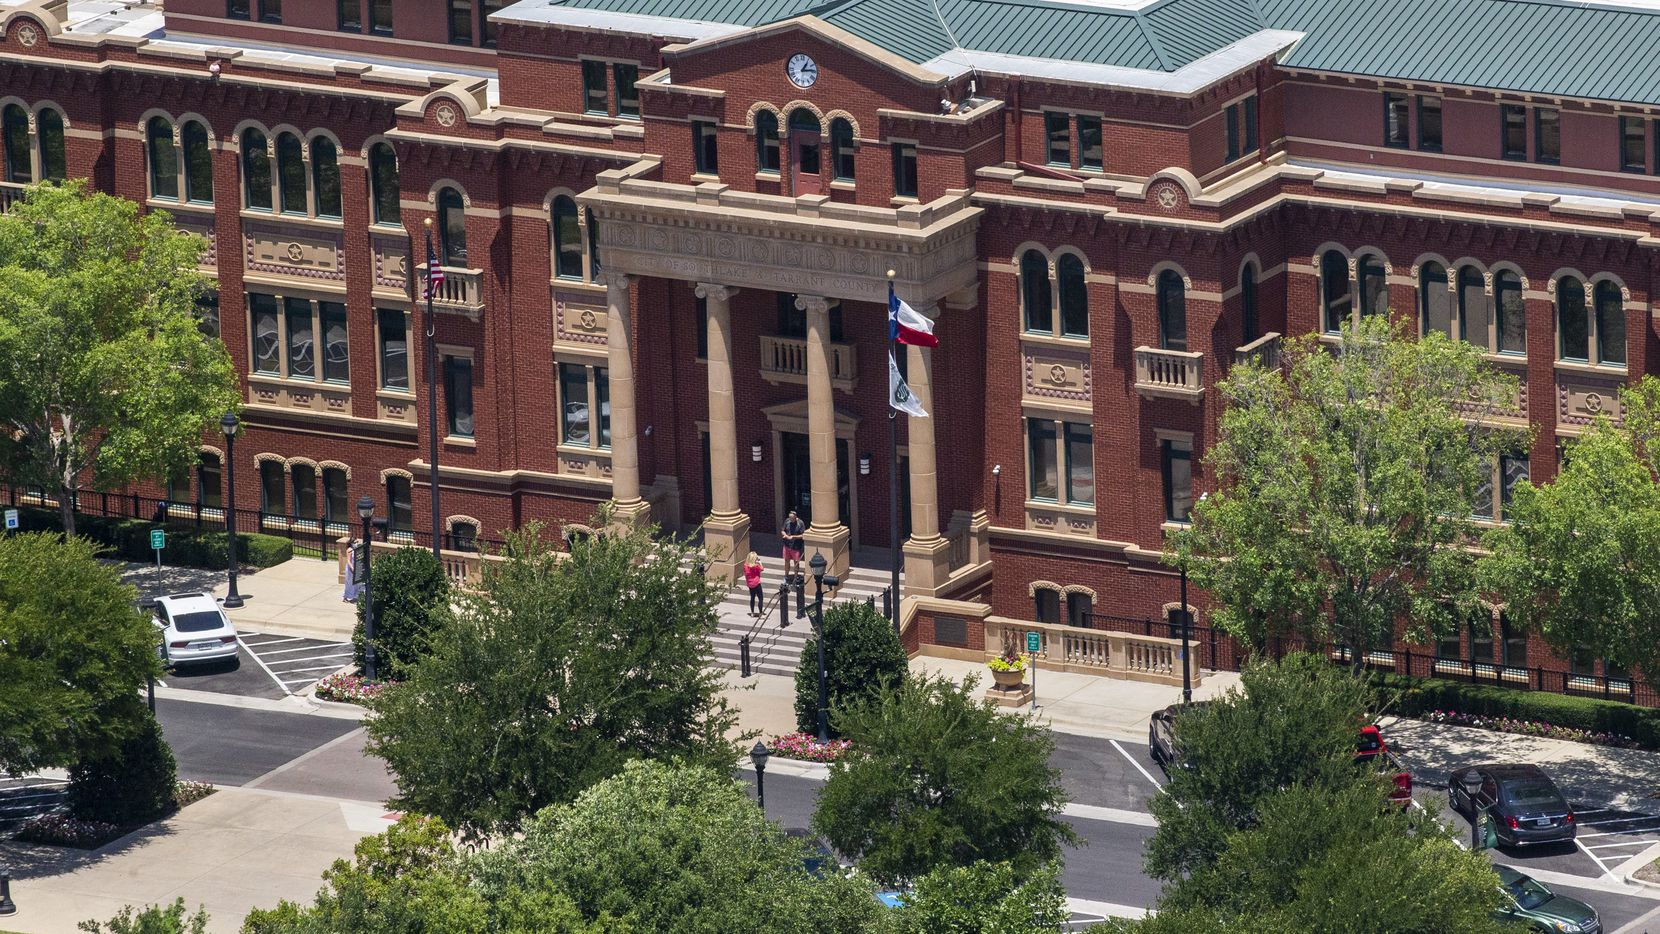 The City of Southlake and Tarrant County building in Southlake Town Square in Southlake, Texas, on Thursday, June 18, 2020. (Lynda M. Gonzalez/The Dallas Morning News)